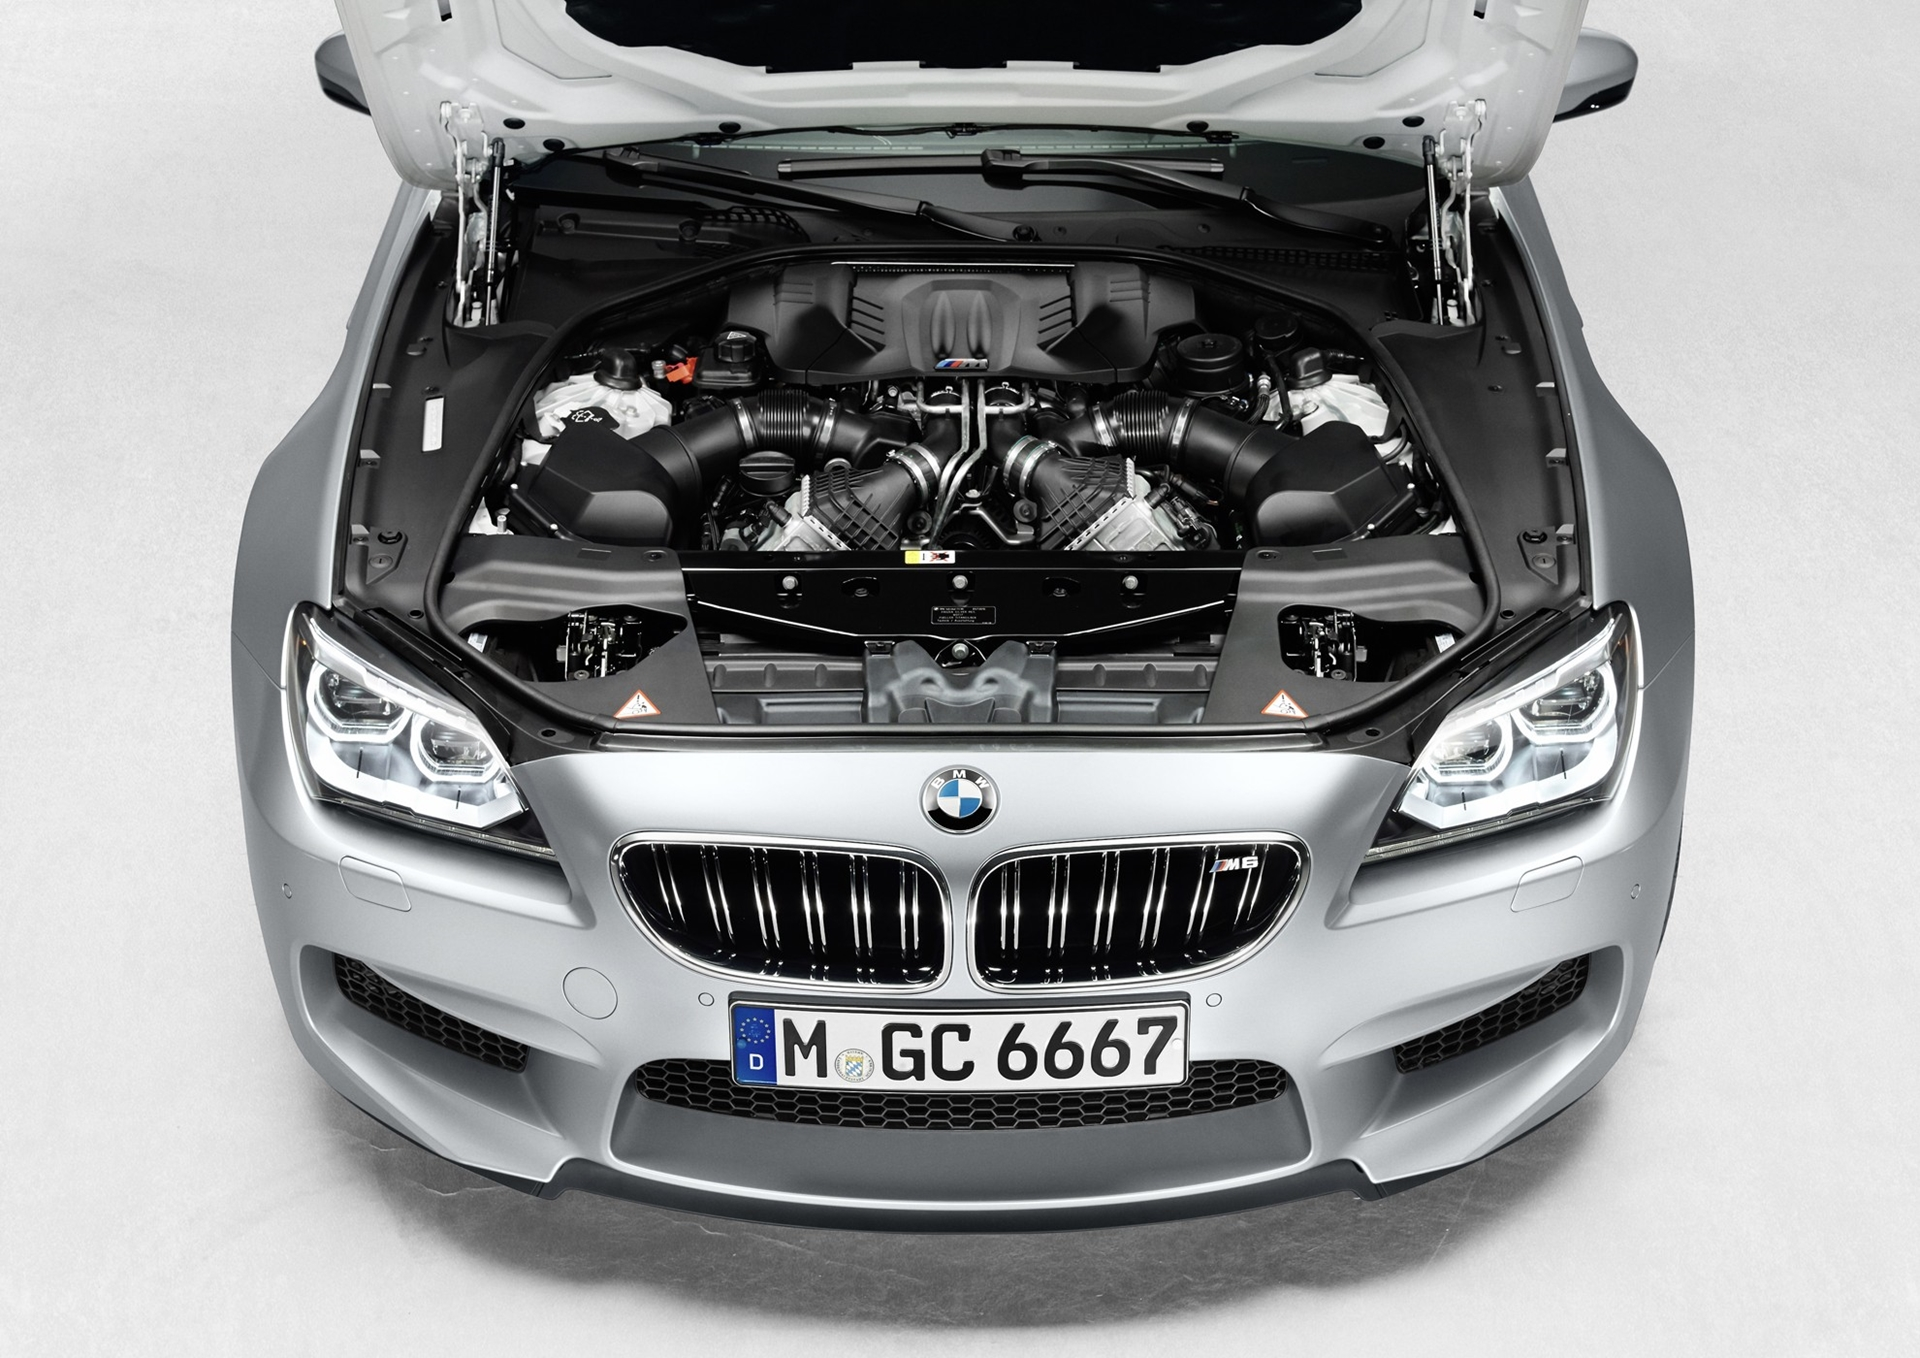 BMW M6 Gran Coupe 2013 Engine